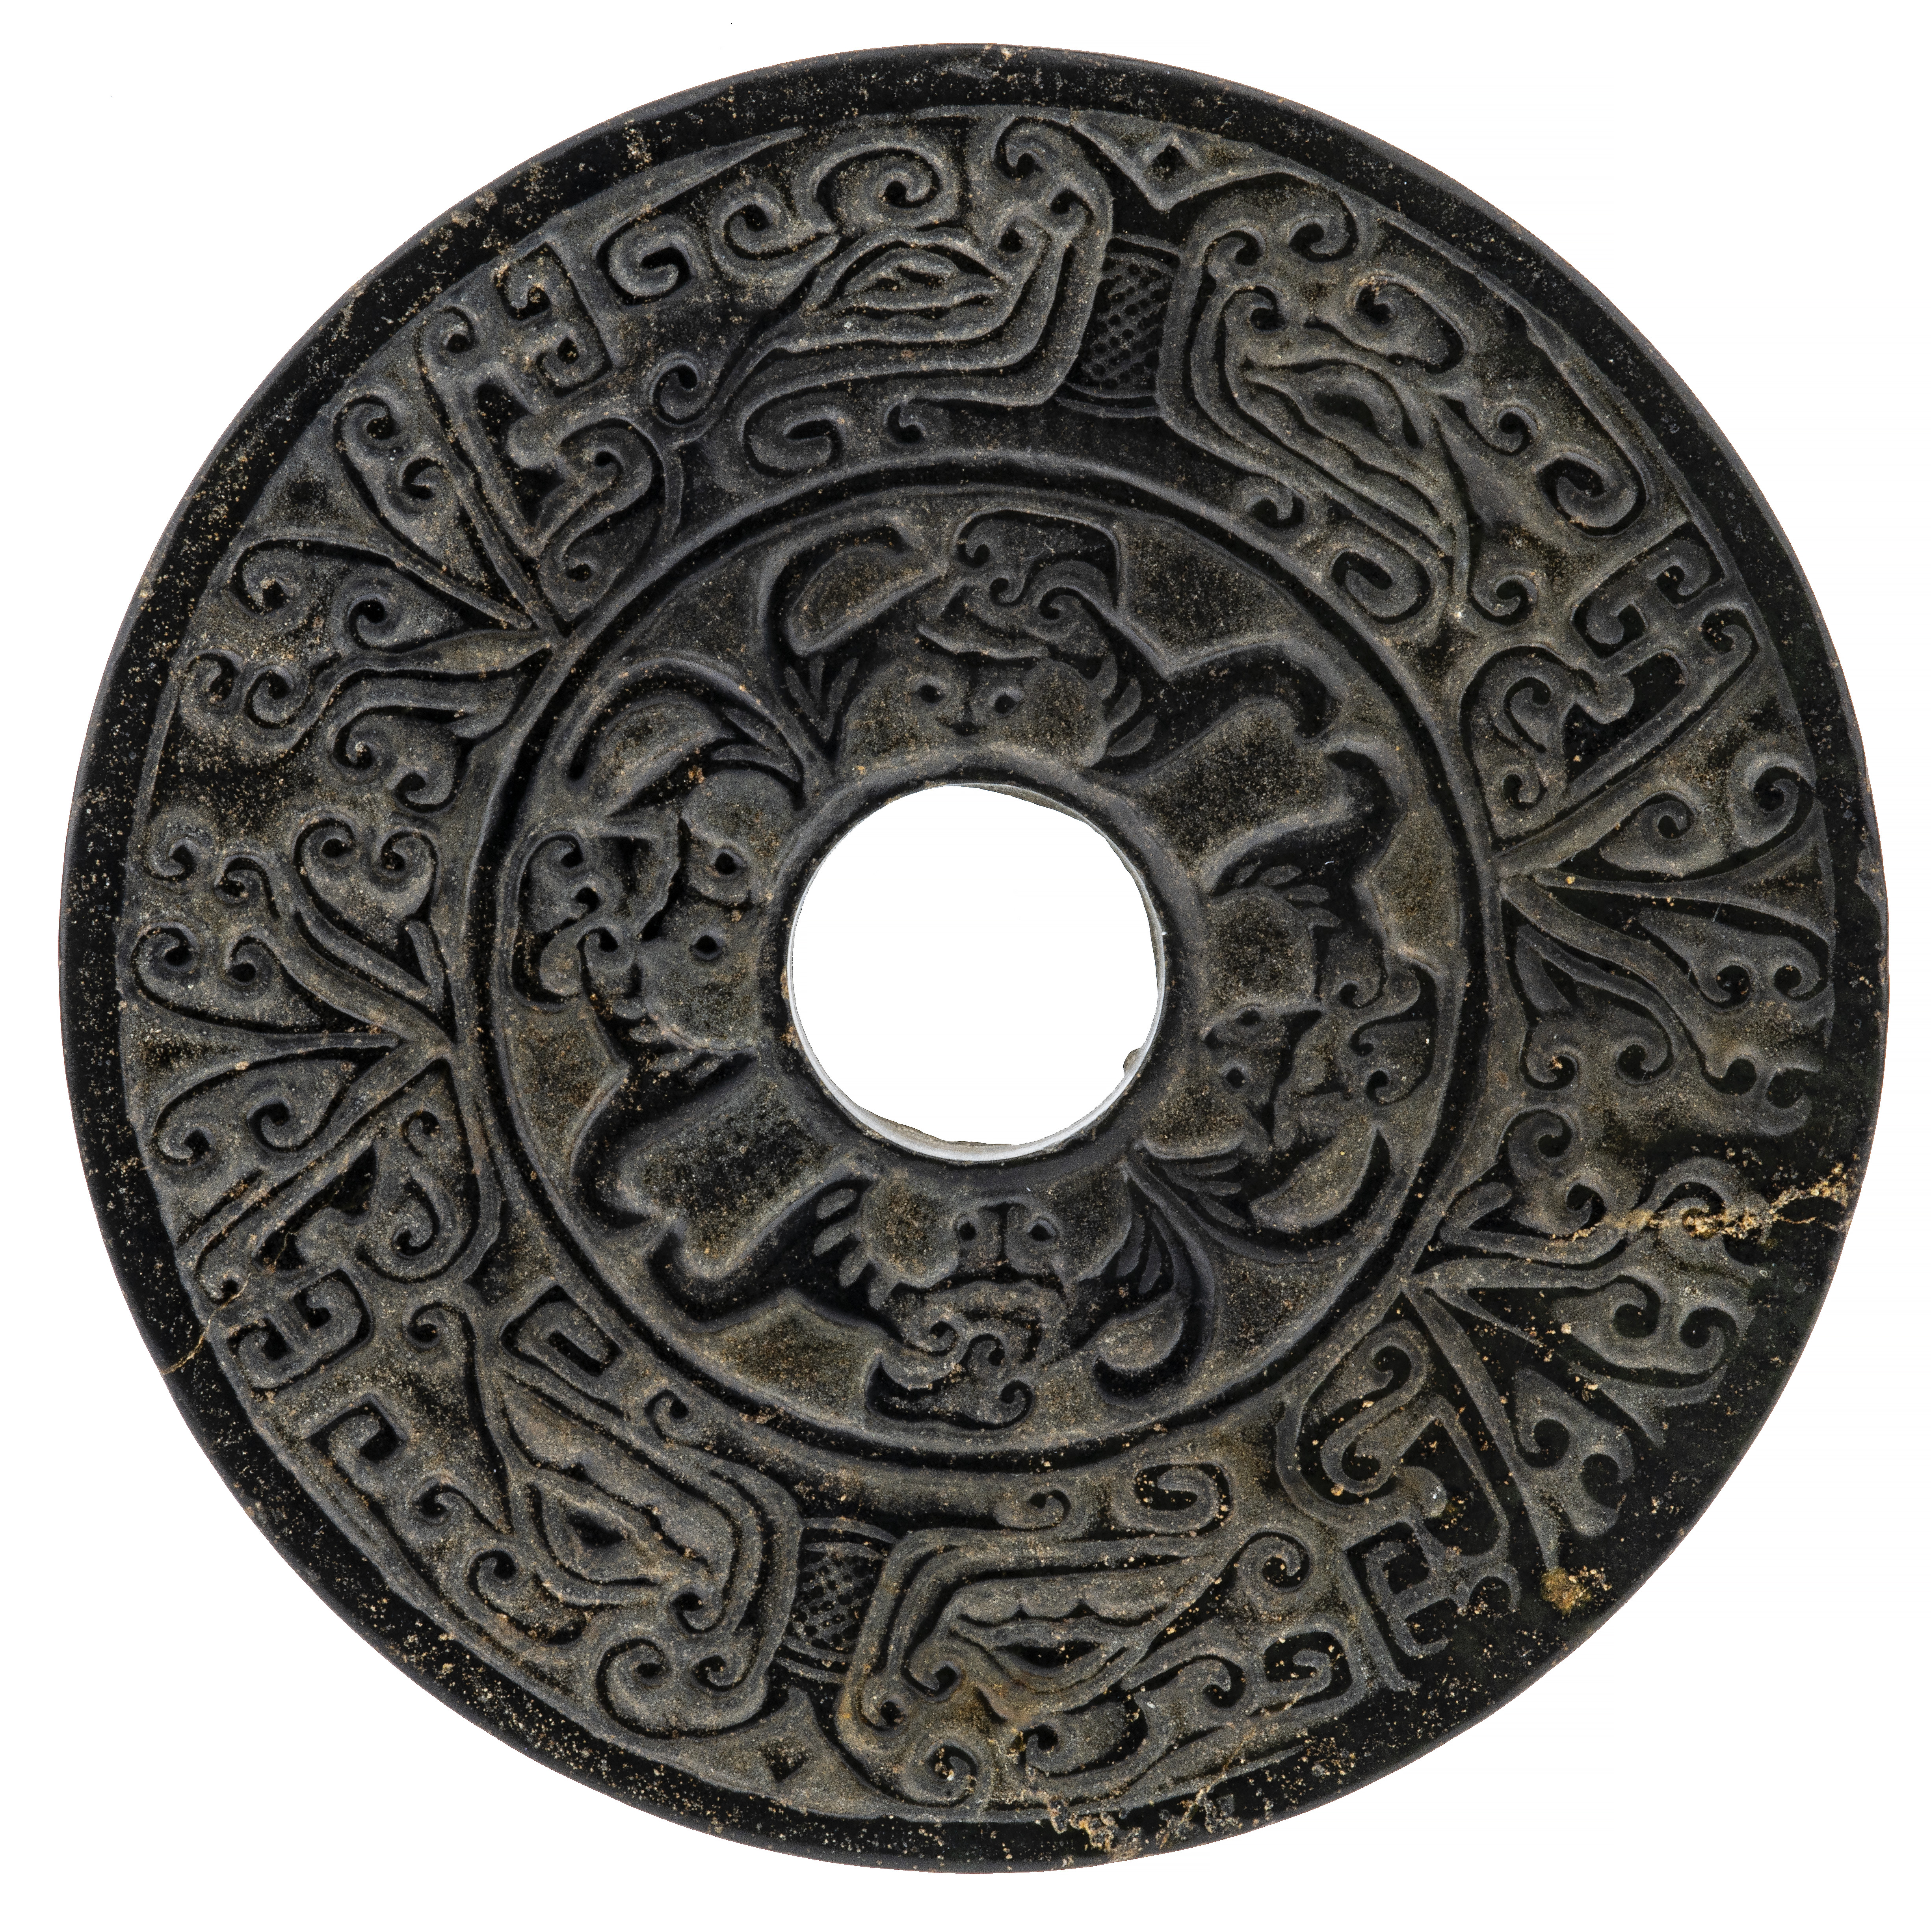 A Spotted Ebony Chinese Carved Archaic Dragon Form Bi Disc